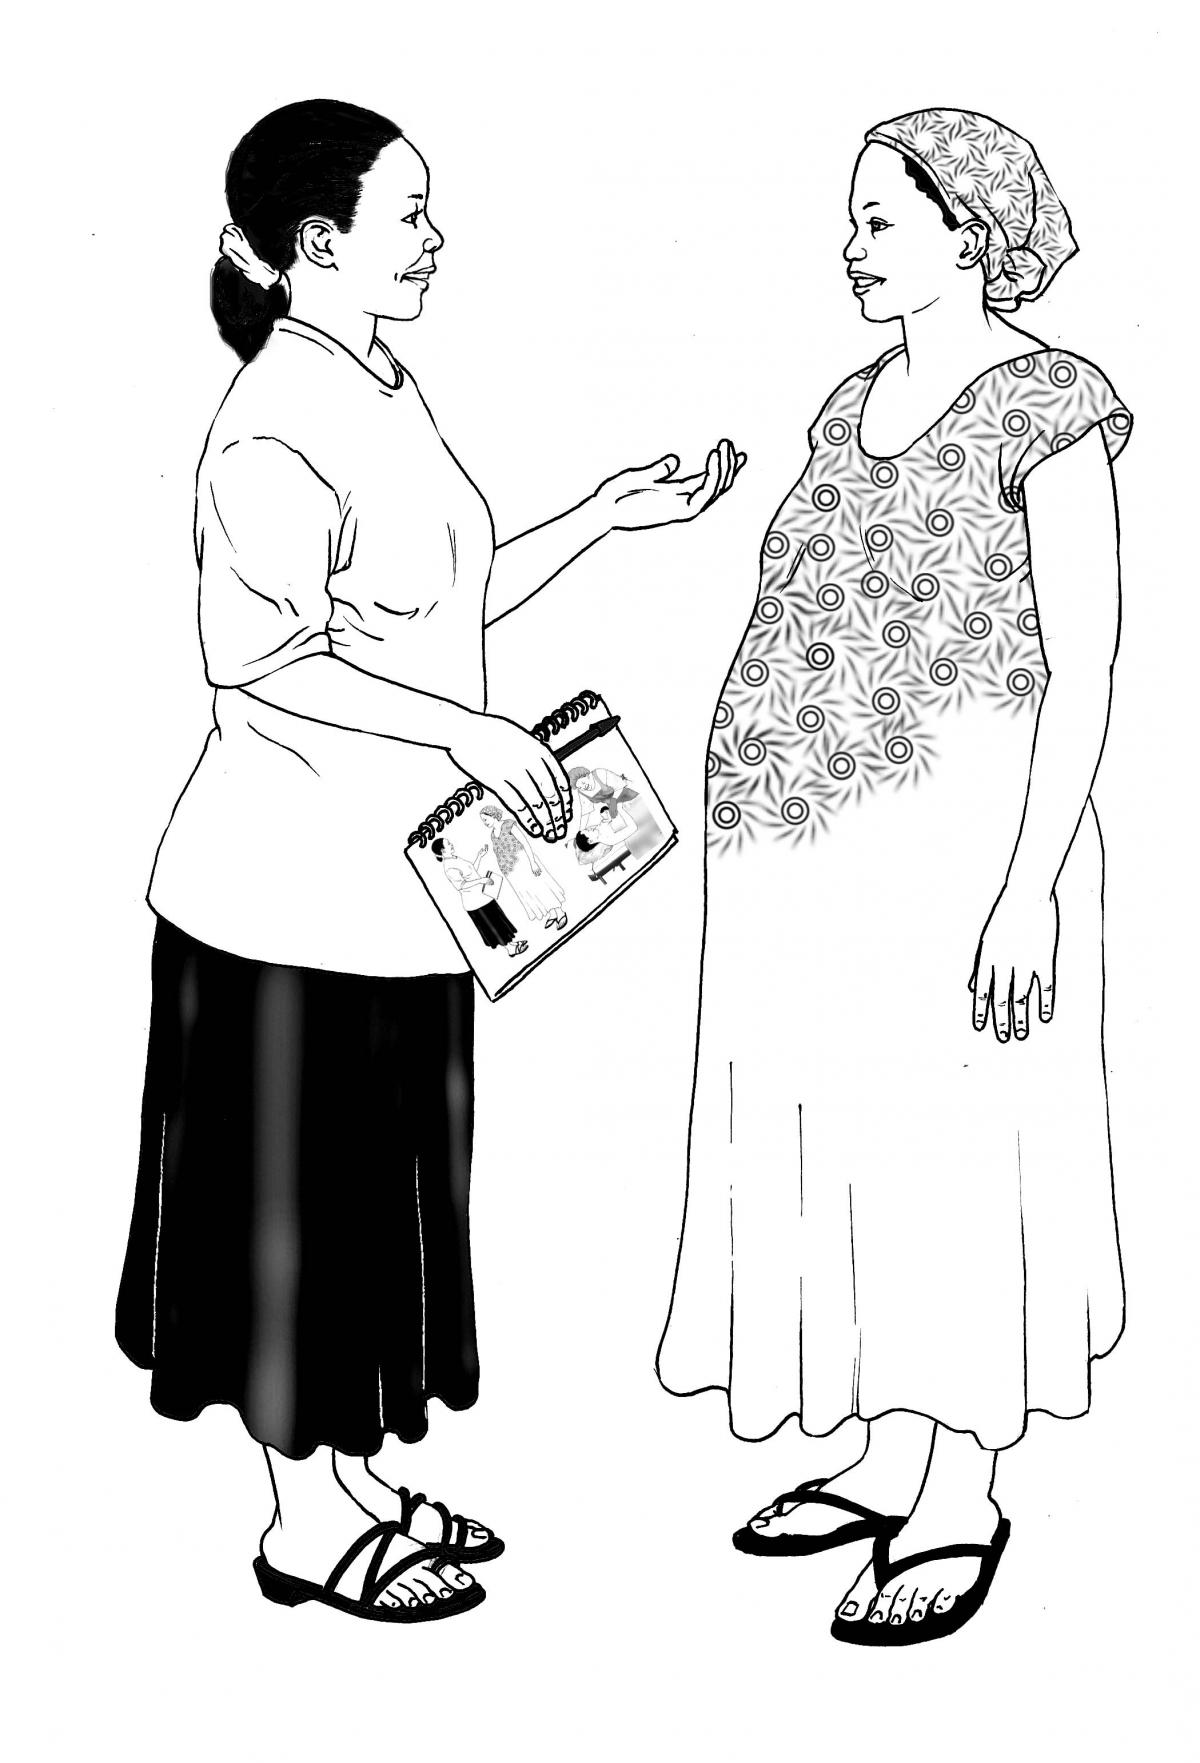 Maternal Health - Counseling - 00A - Non-country specific